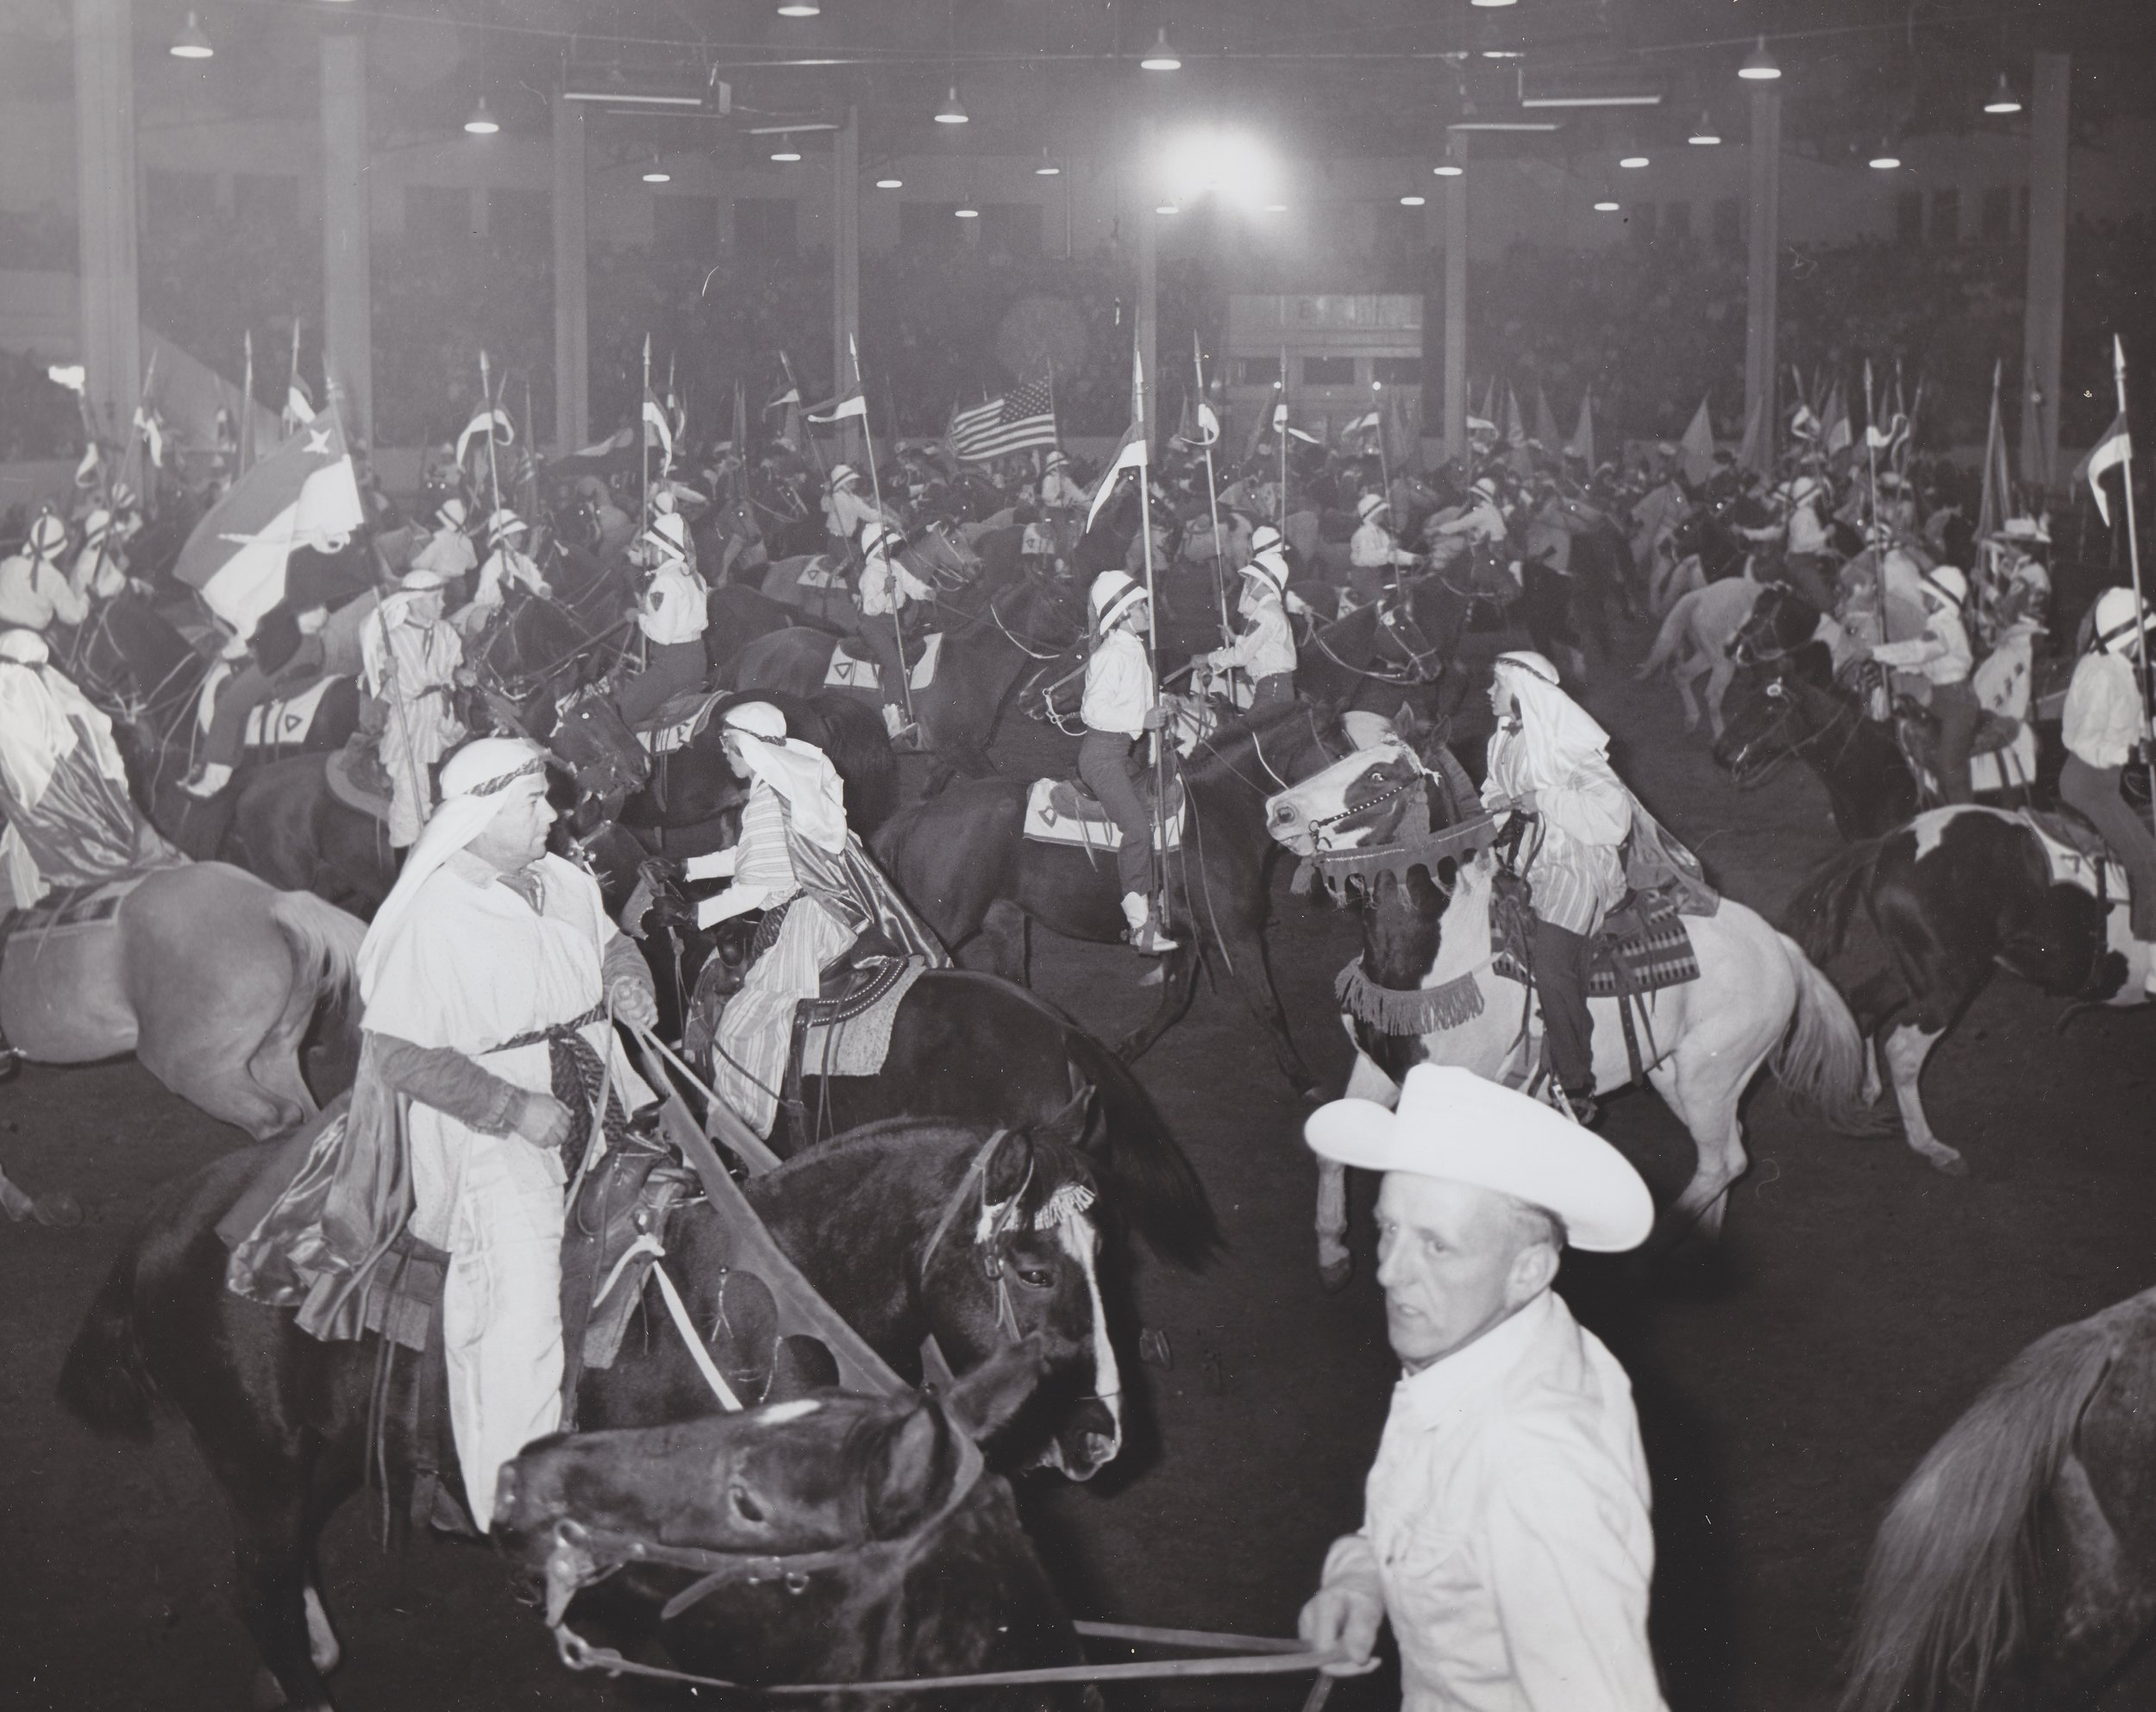 The Grand Entry serpentine at the 1957 Westernaires Horsecapades Annual Show.